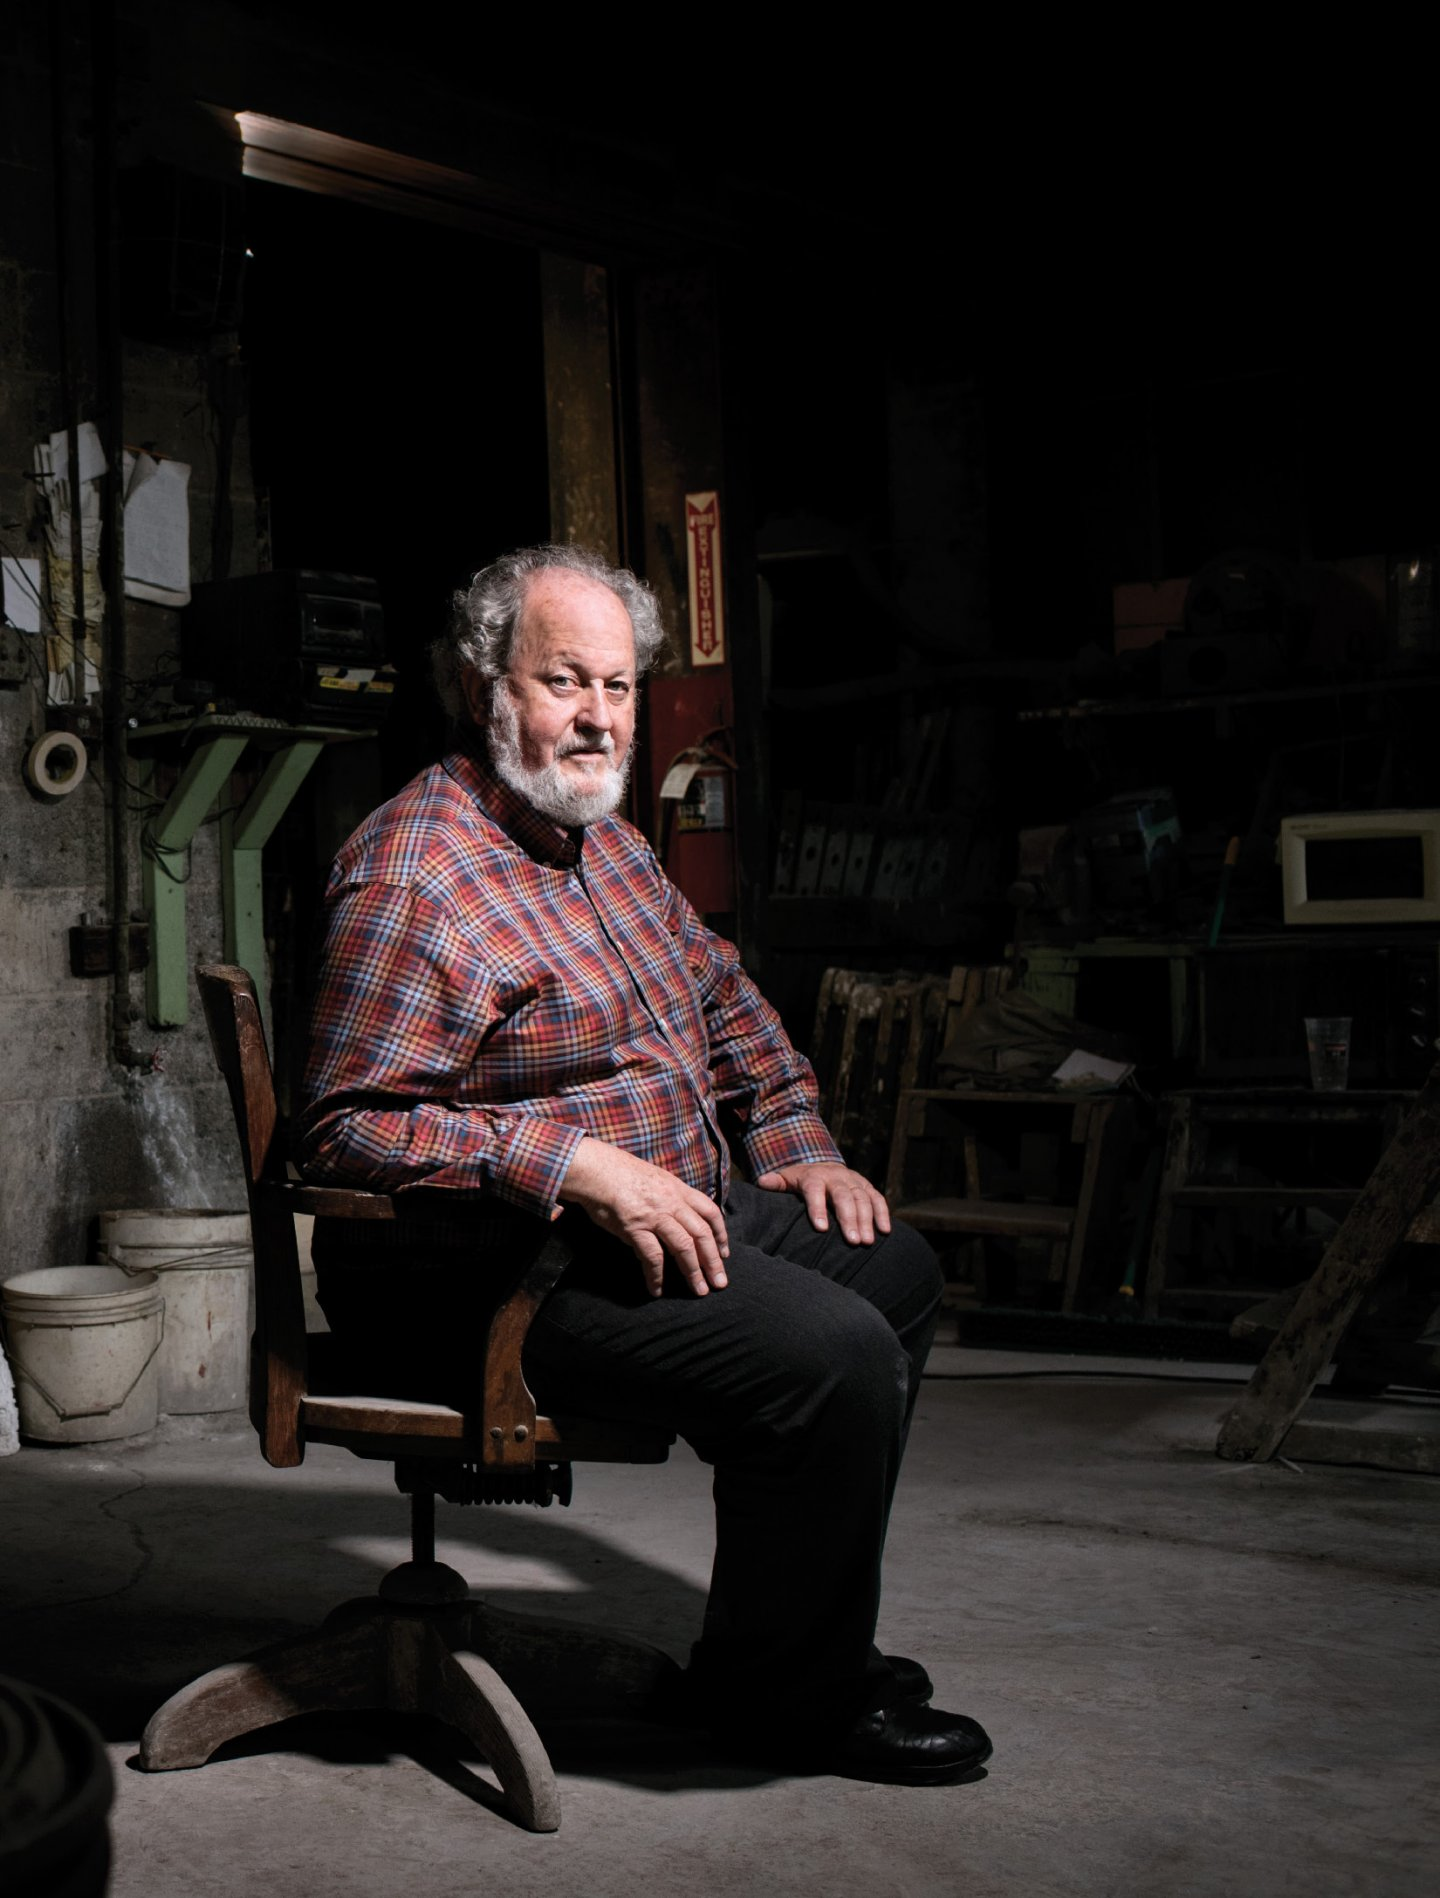 A bearded man in a checked shirt sitting in a dark room